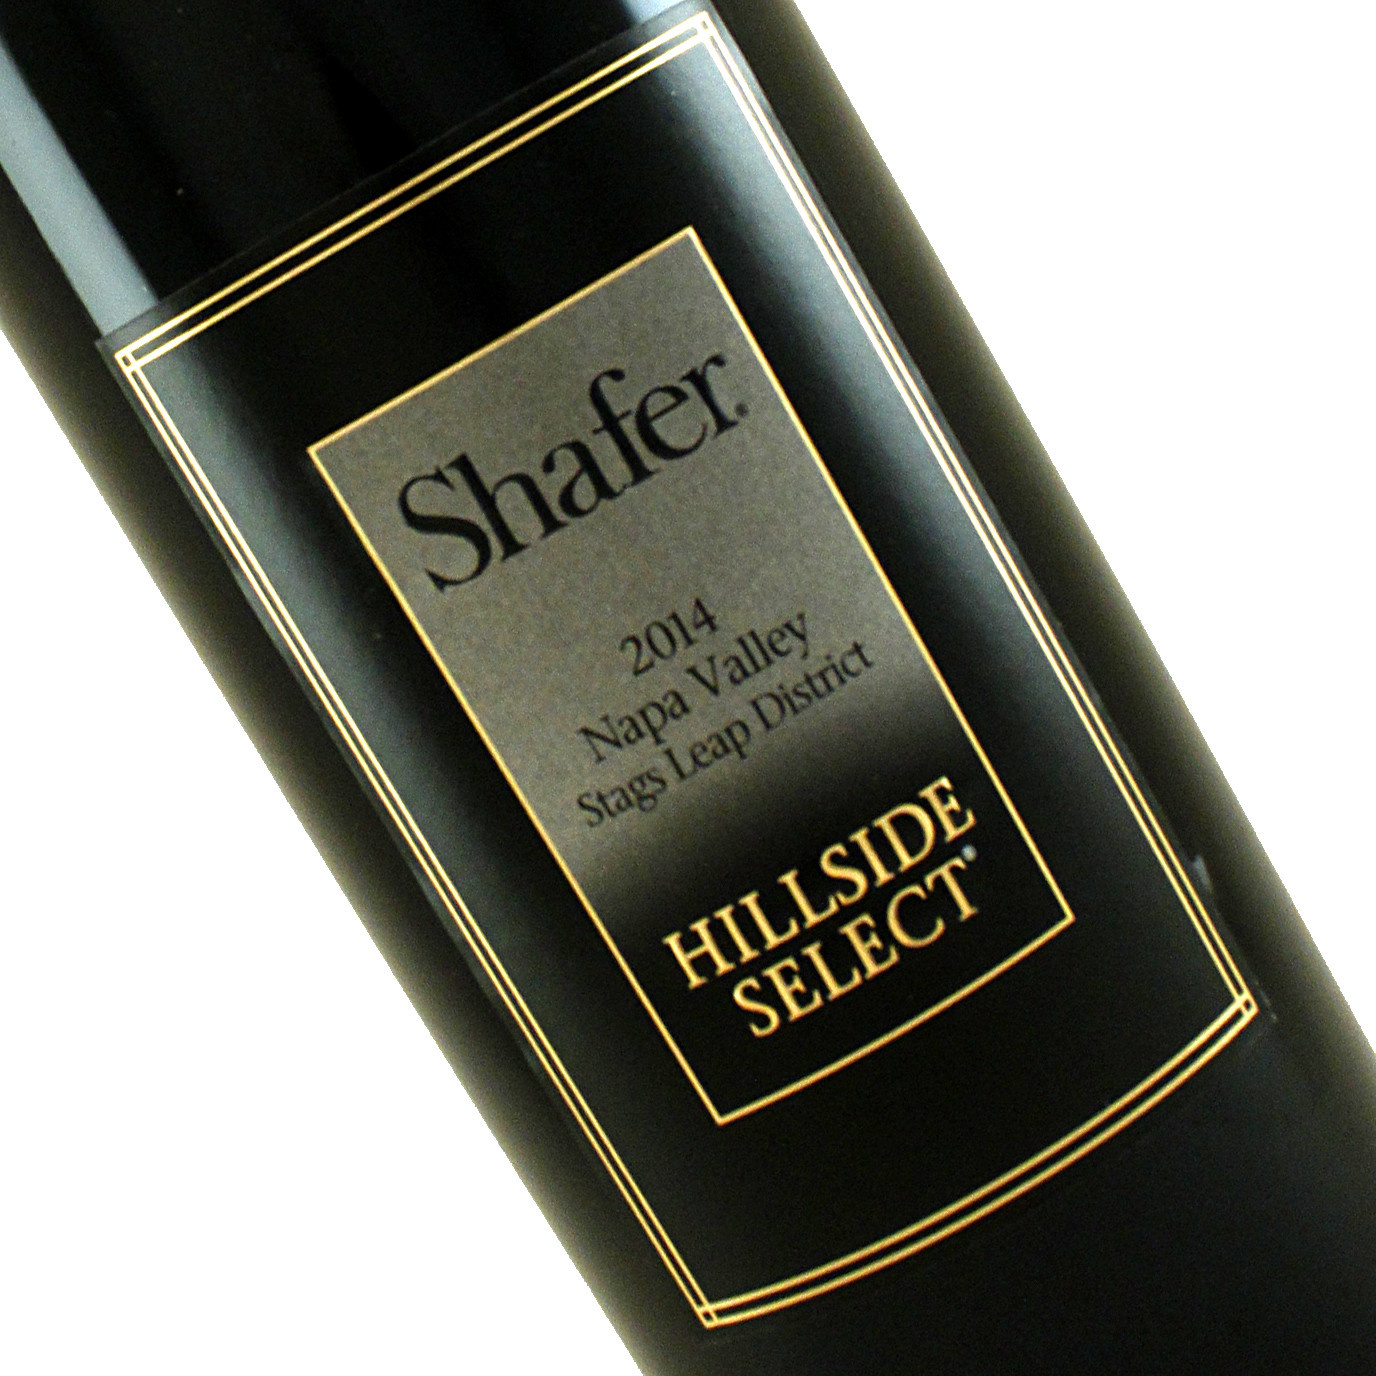 """Shafer Vineyards 2014 Cabernet Sauvignon """"Hillside Select"""" Stags Leap District, Napa Valley"""